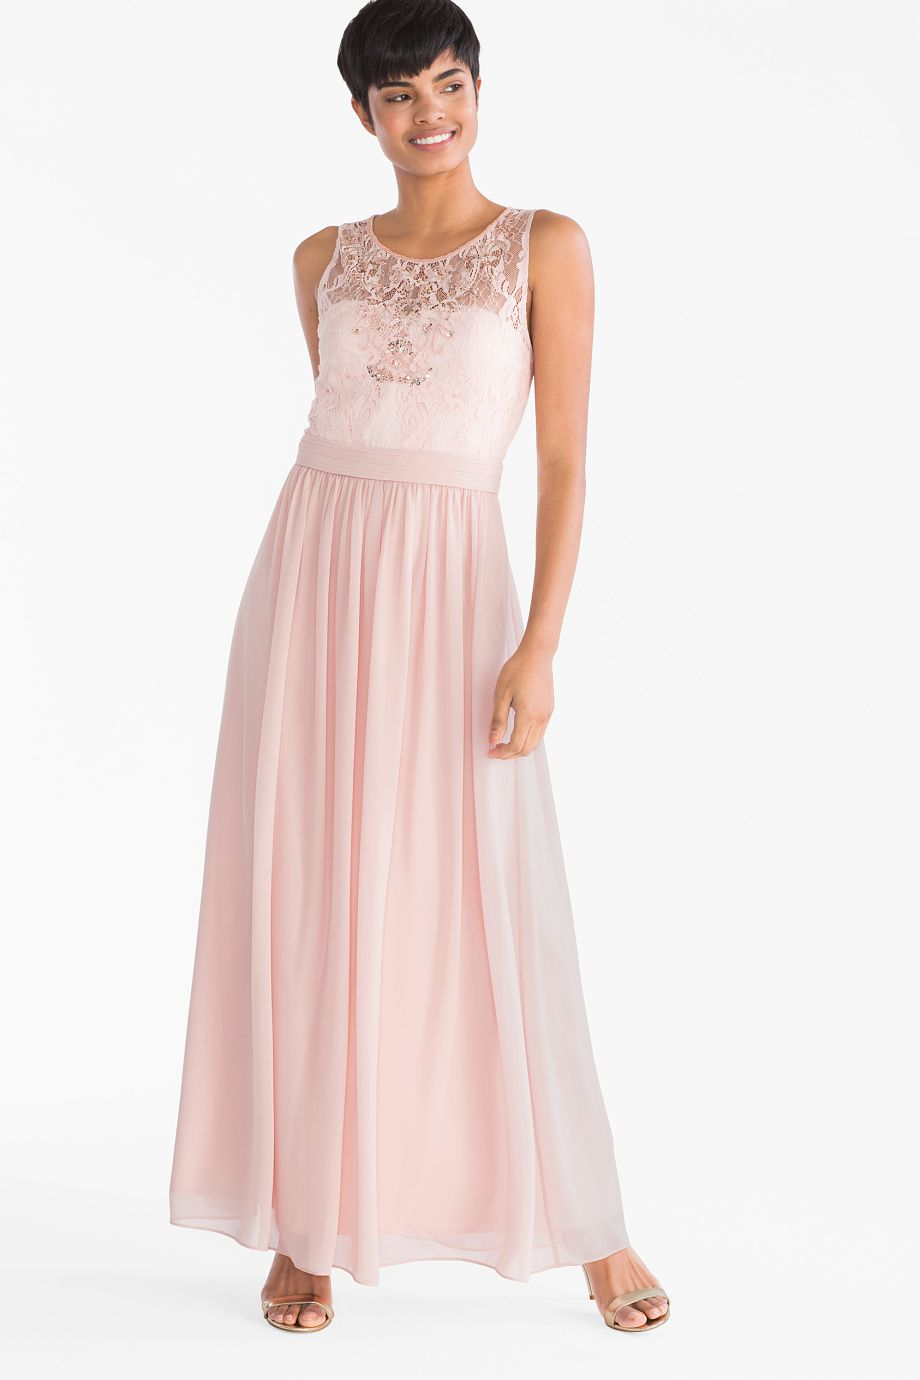 damen - fit & flare kleid - festlich - rosa | fit and flare